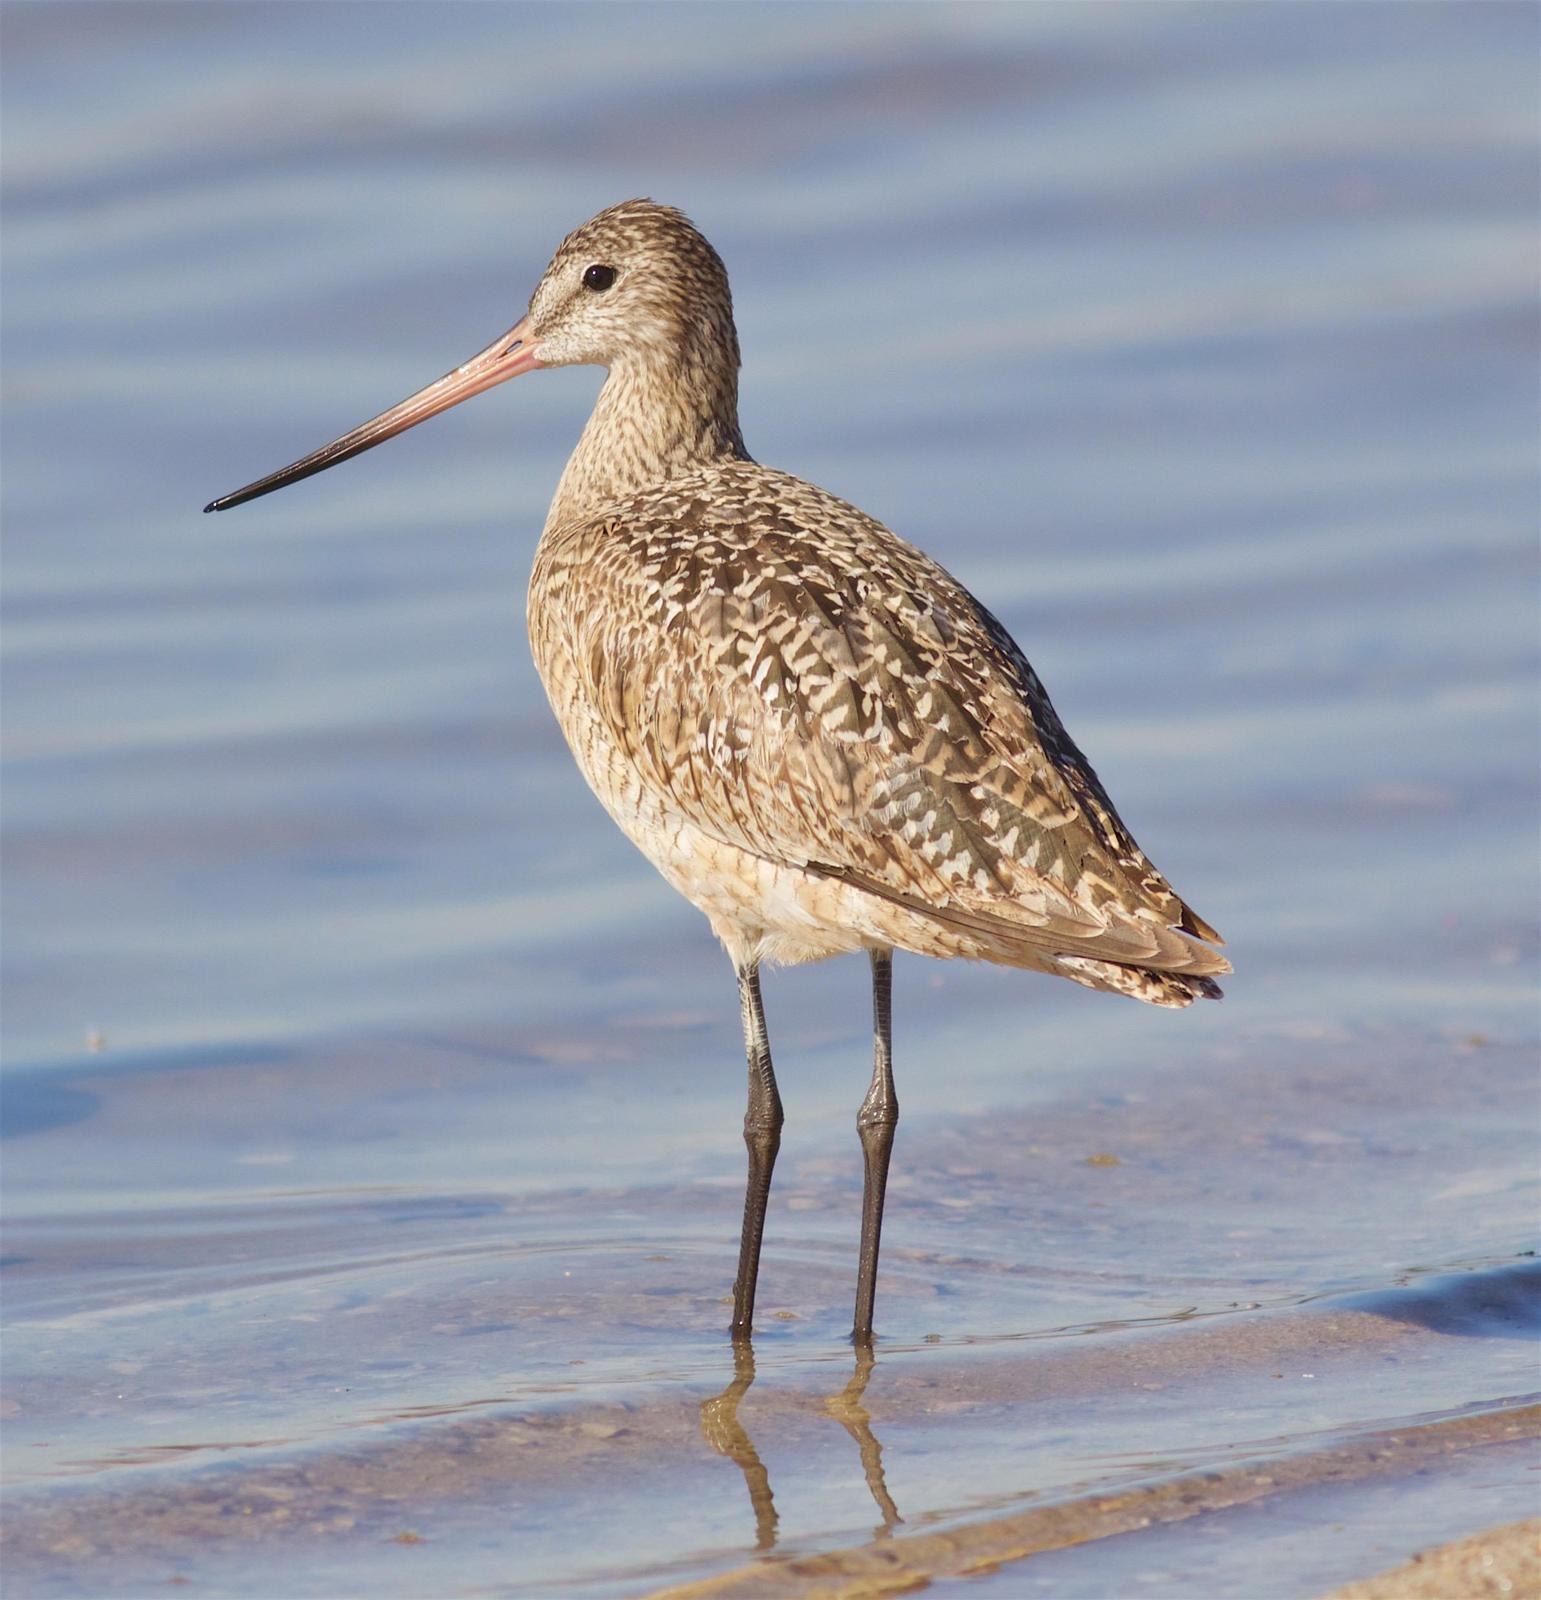 Marbled Godwit Photo by Kathryn Keith